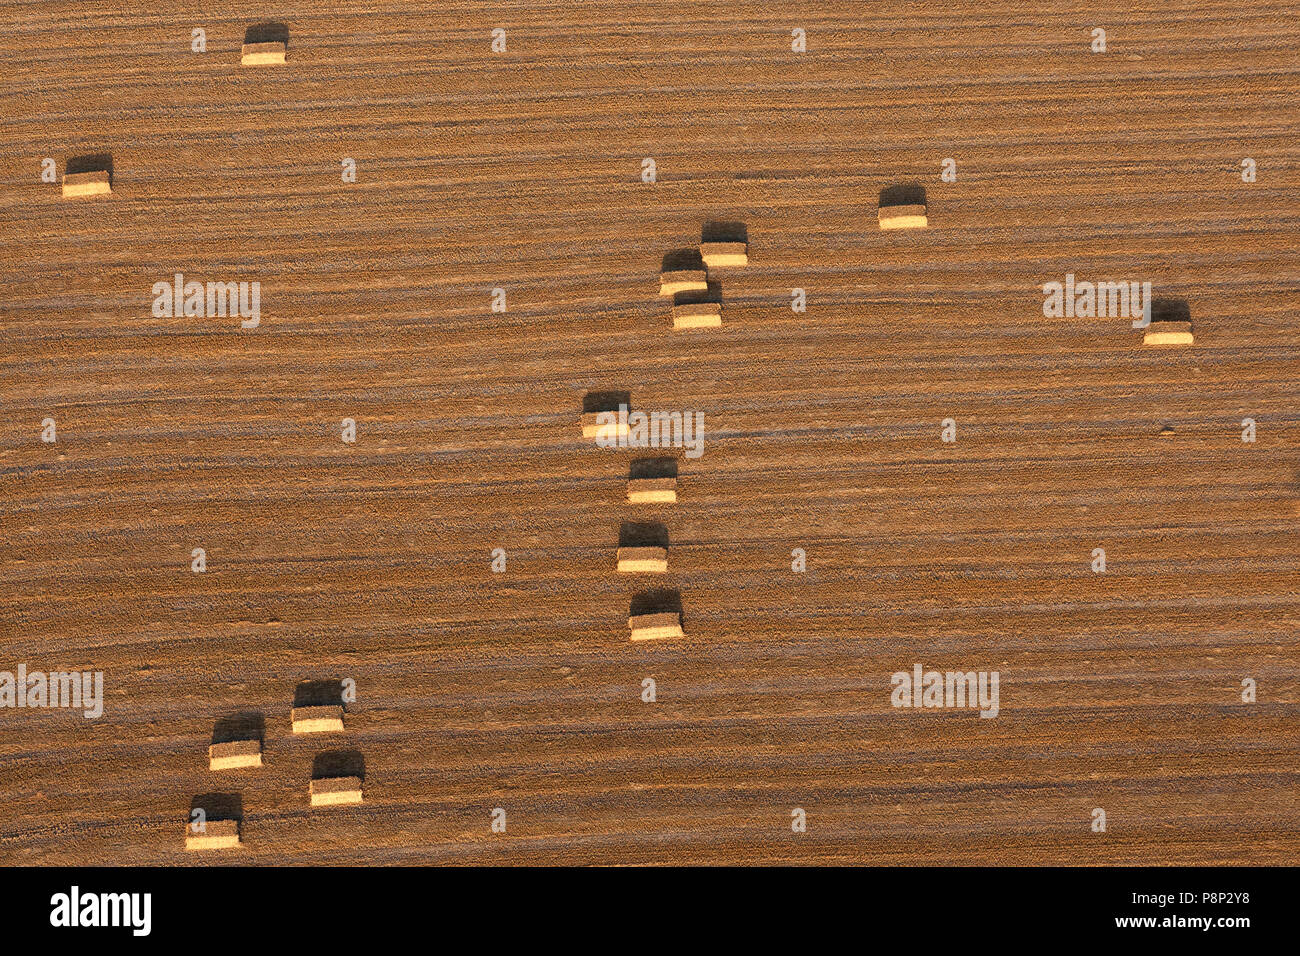 Aerial of a wheat field after the harvest - Stock Image